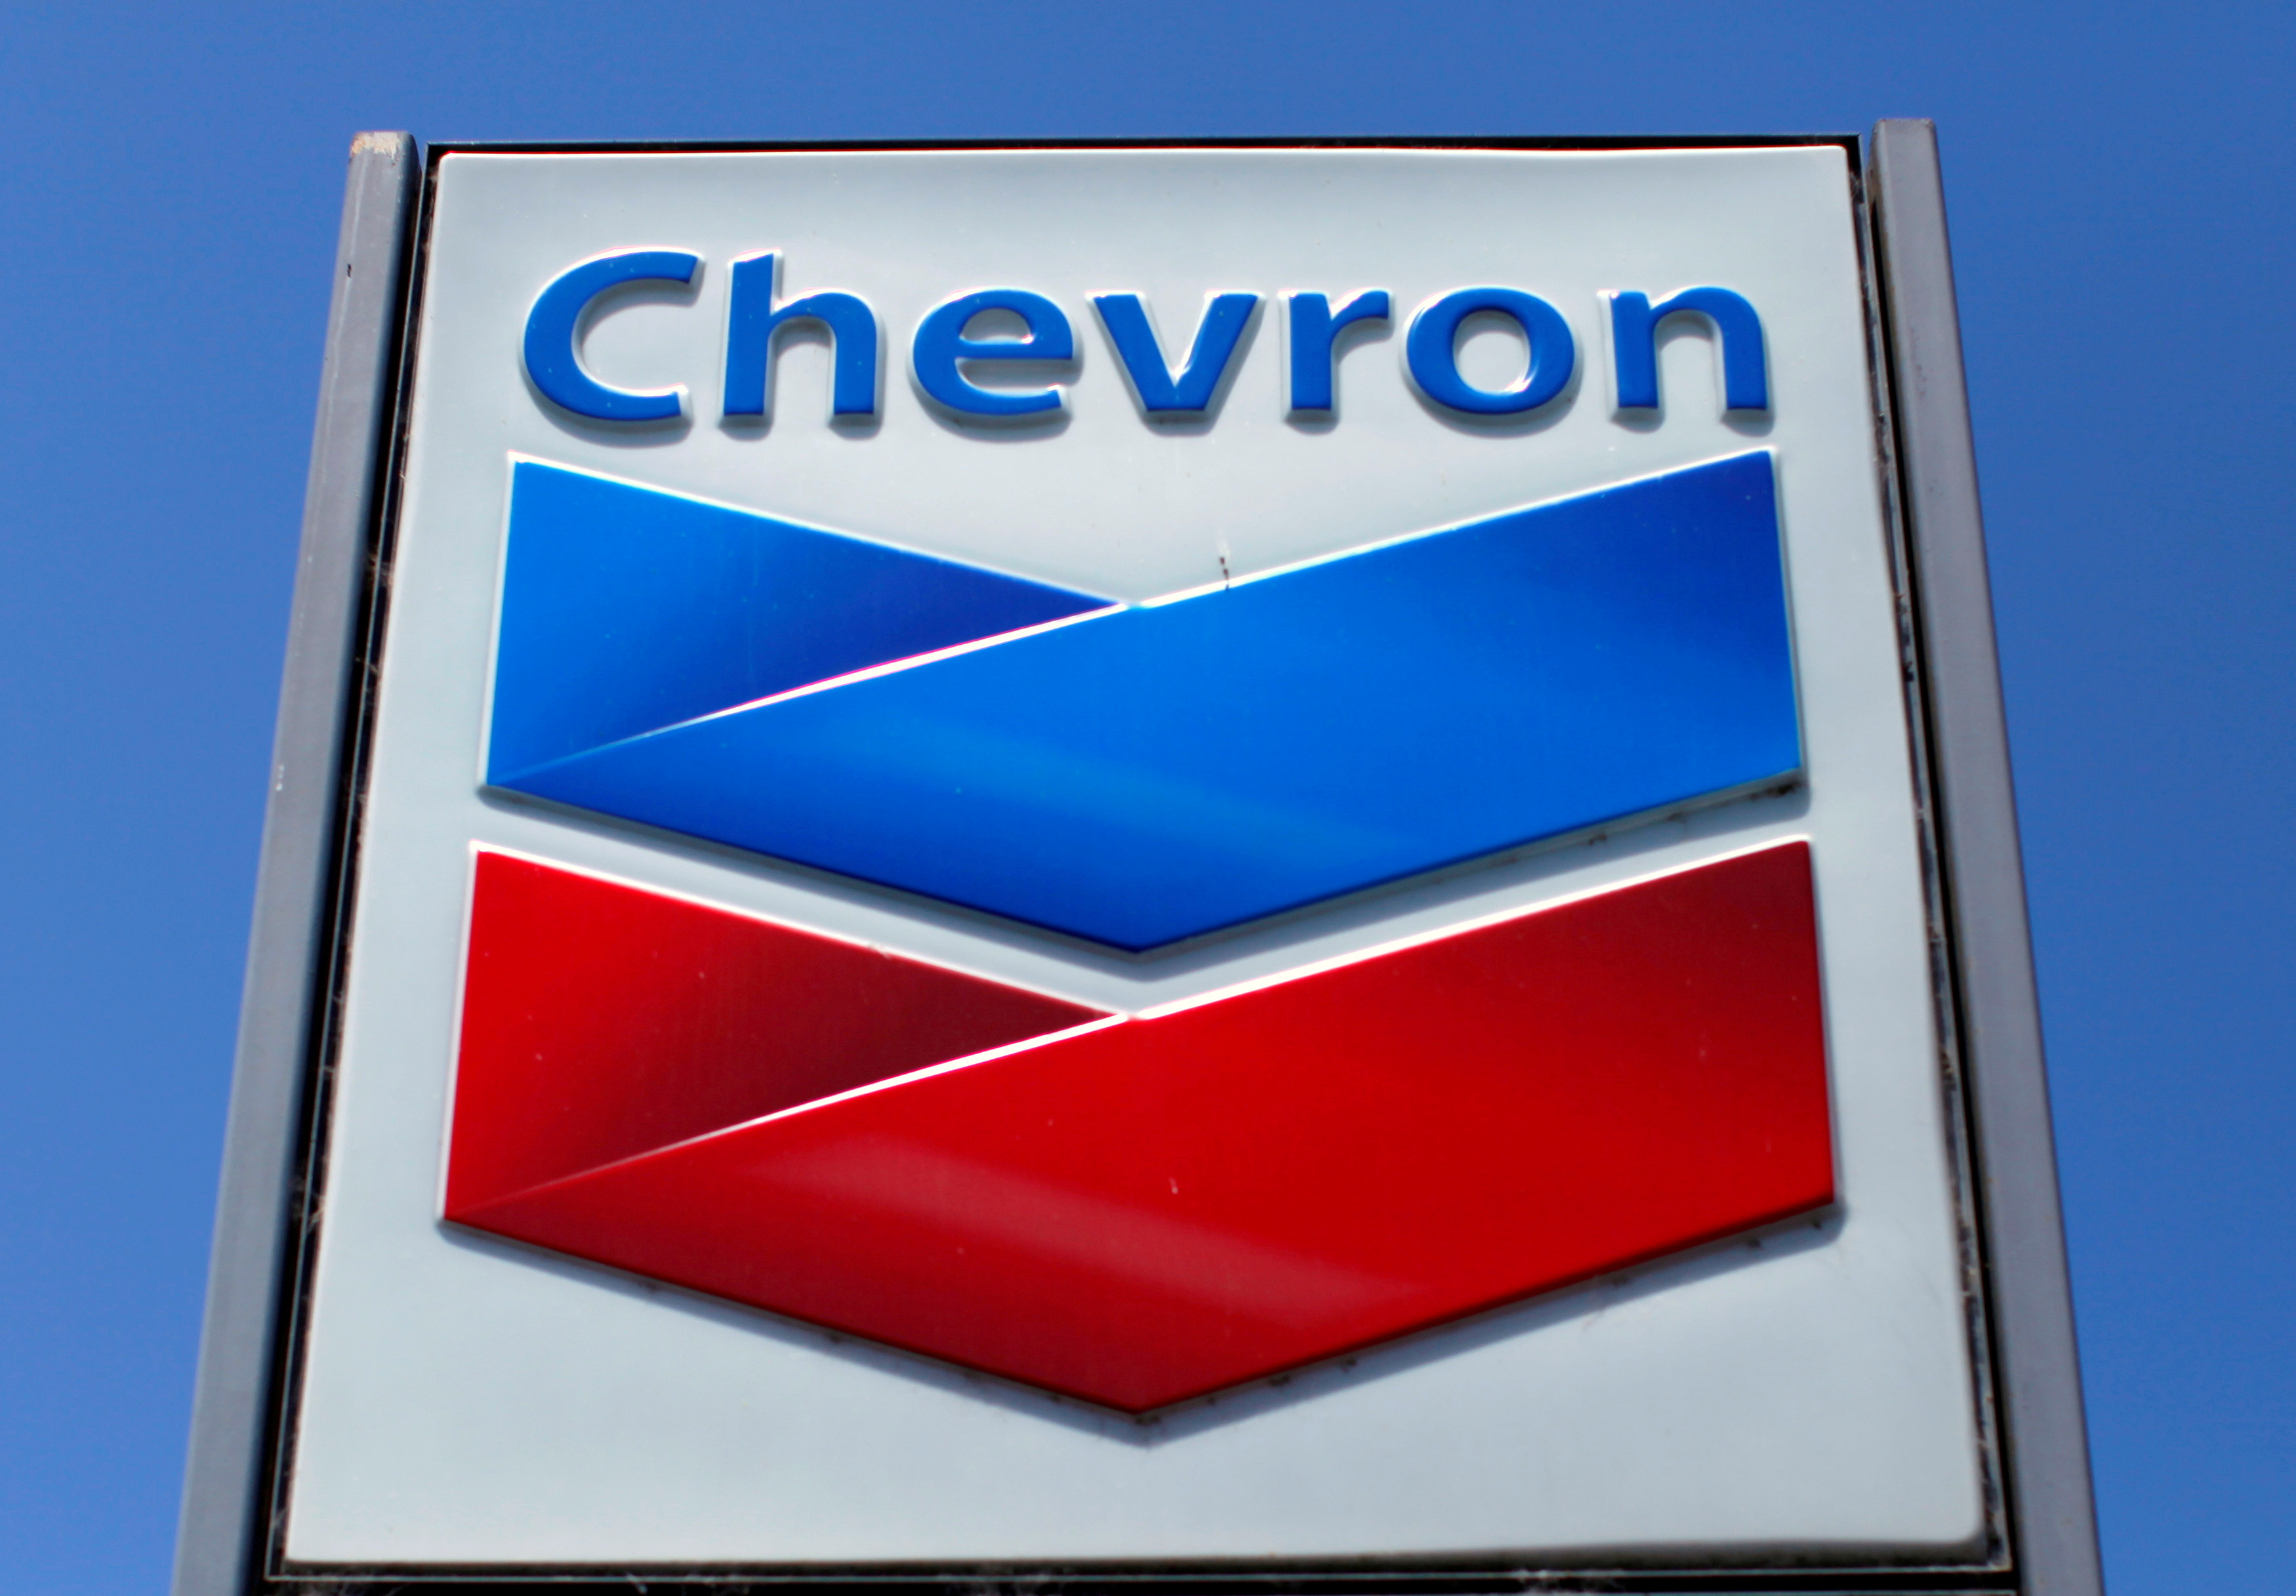 A Chevron gas station sign in Del Mar, California. REUTERS/Mike Blake